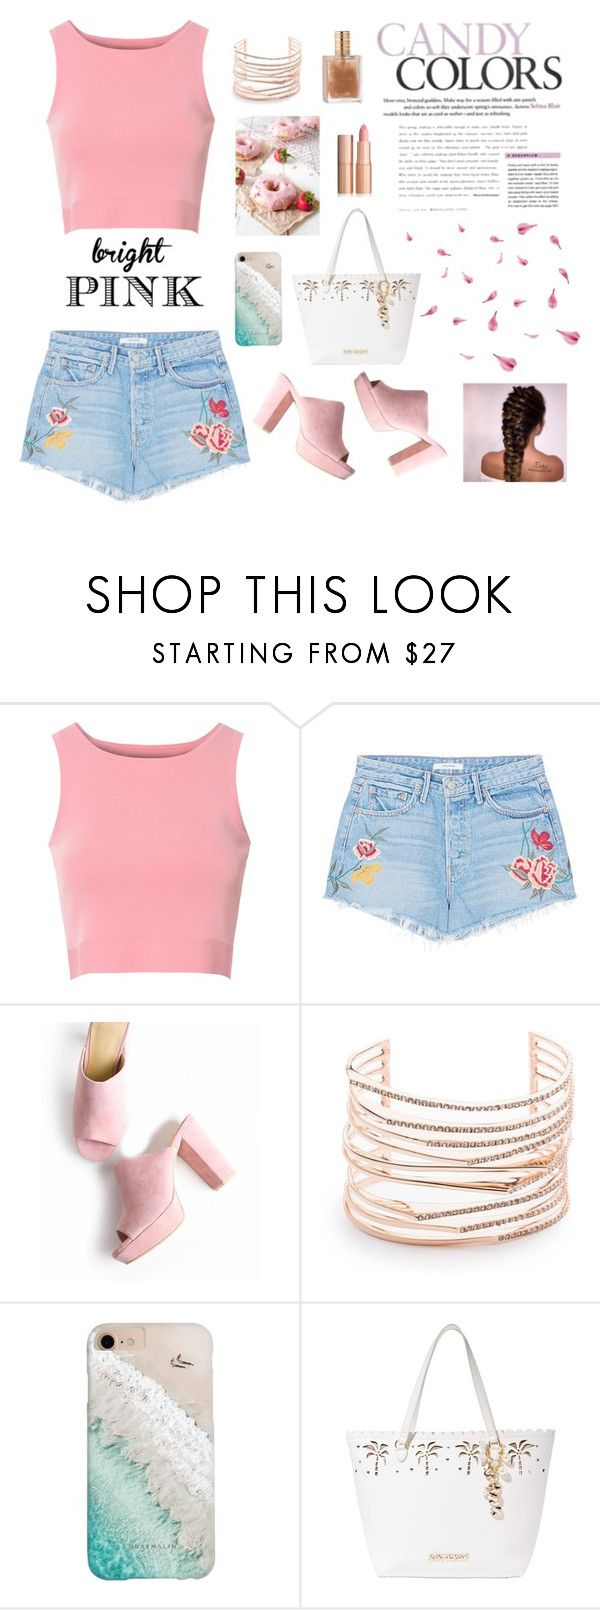 """""""Pretty in pink"""" by alexrsg ❤ liked on Polyvore featuring Glamorous, GRLFRND, Alexis Bittar, Gray Malin and Betsey Johnson"""